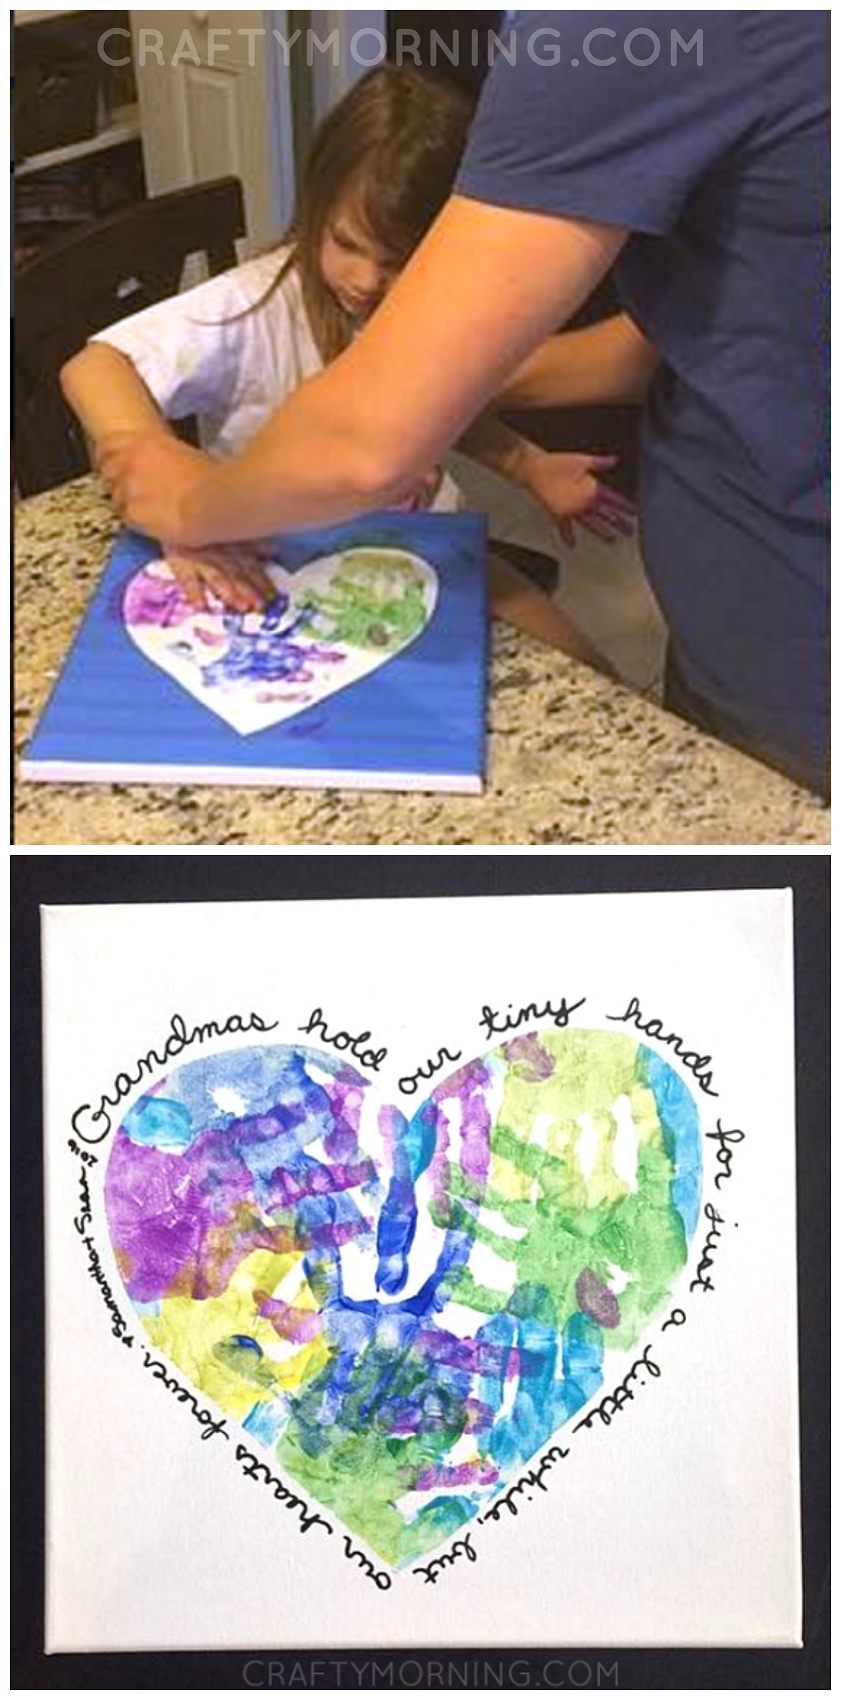 10 Spectacular Homemade Gift Ideas For Grandma heart handprint canvas for grandma or mom on mothers day great 1 2020